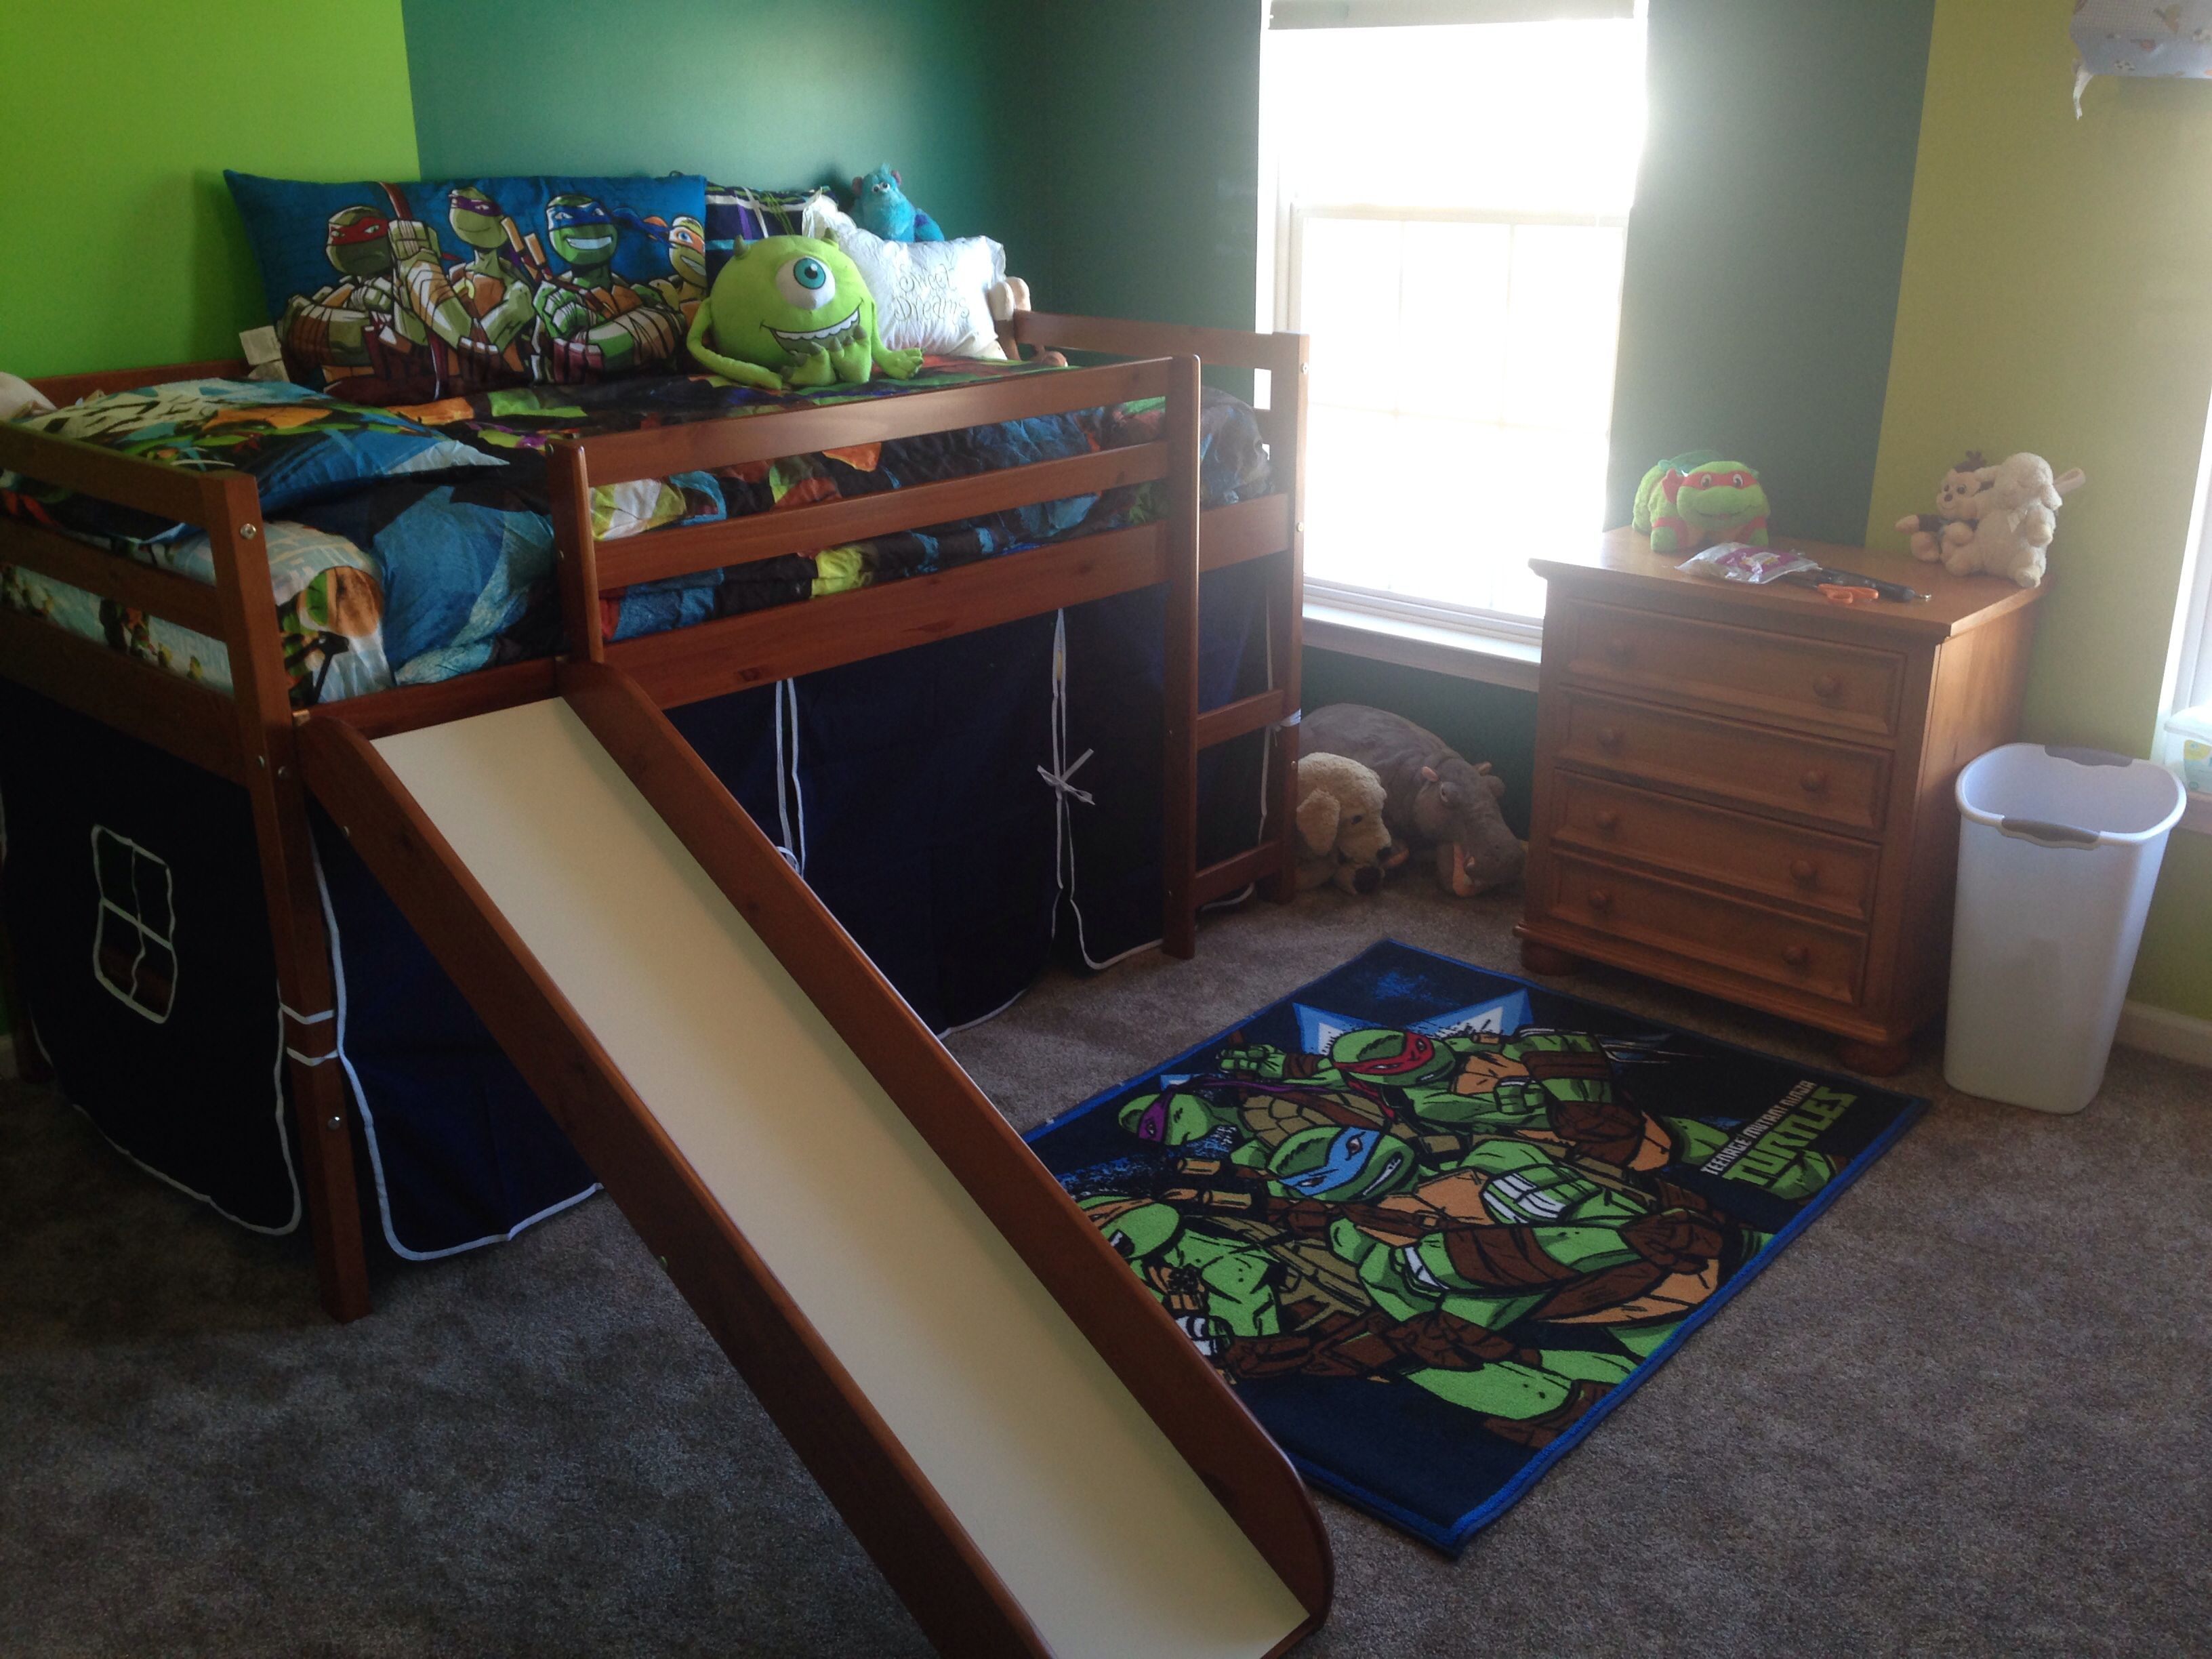 Pin By Tiffany Cabral On Ryan Turtle Bedroom Ninja Turtles Bedroom Decor Ninja Turtle Bedroom